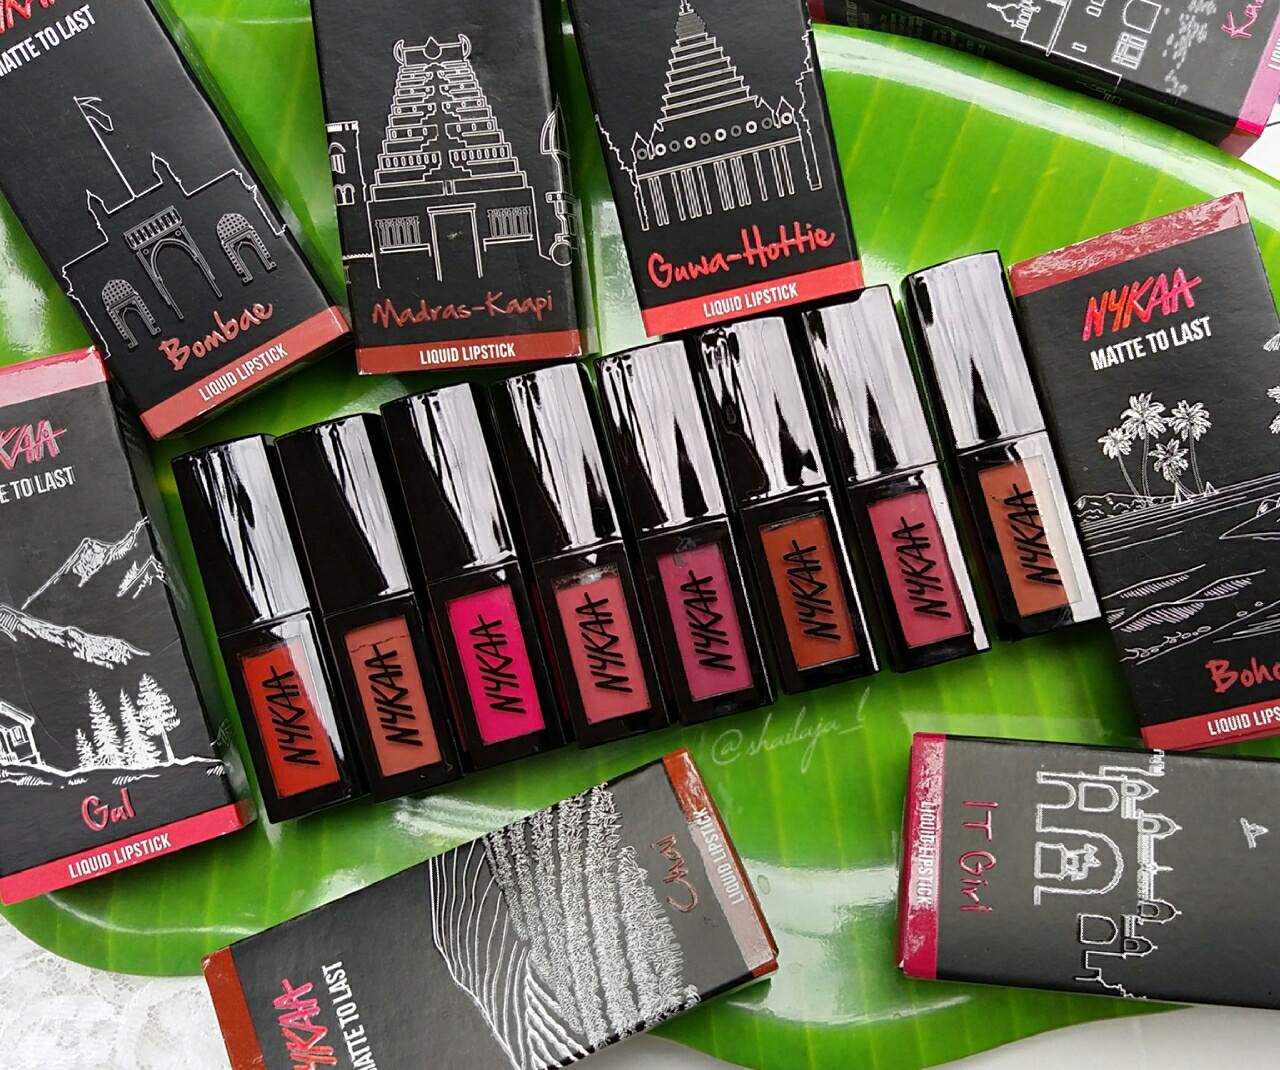 Nykaa Matte to Last Liquid Lipsticks 2